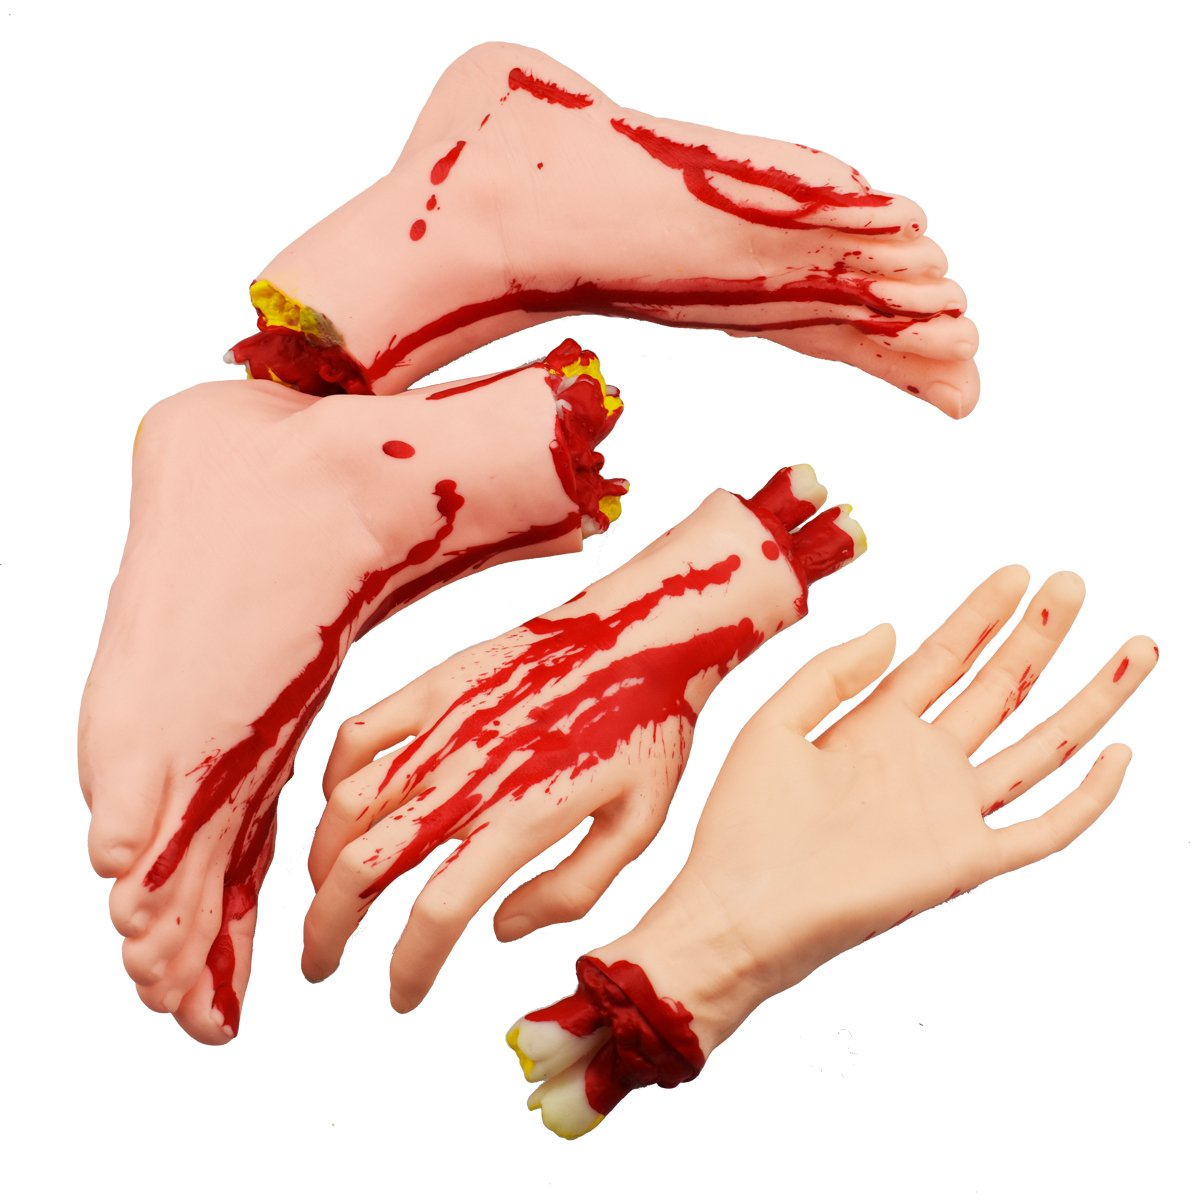 XONOR Halloween Severed Hands Feet Set Scary Bloody Broken Body Parts Halloween Props Decorations, 4 Pieces(Feet & Hands) (Skin Color)